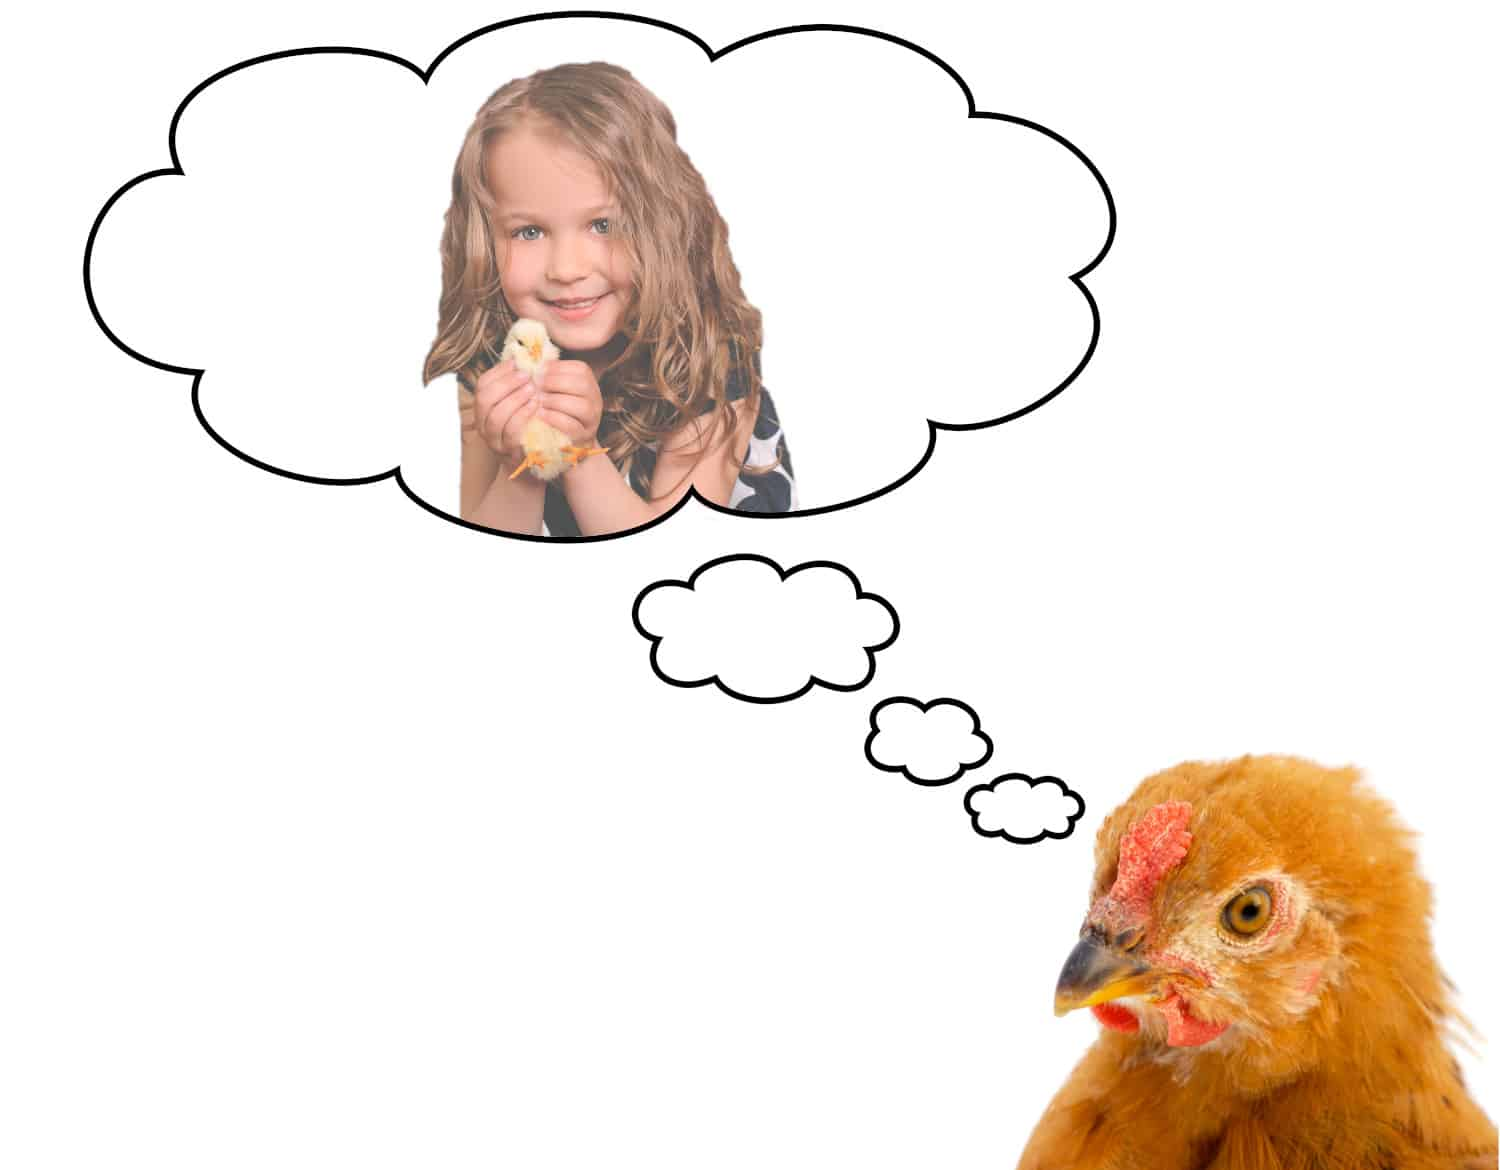 Chicken thinking about owner